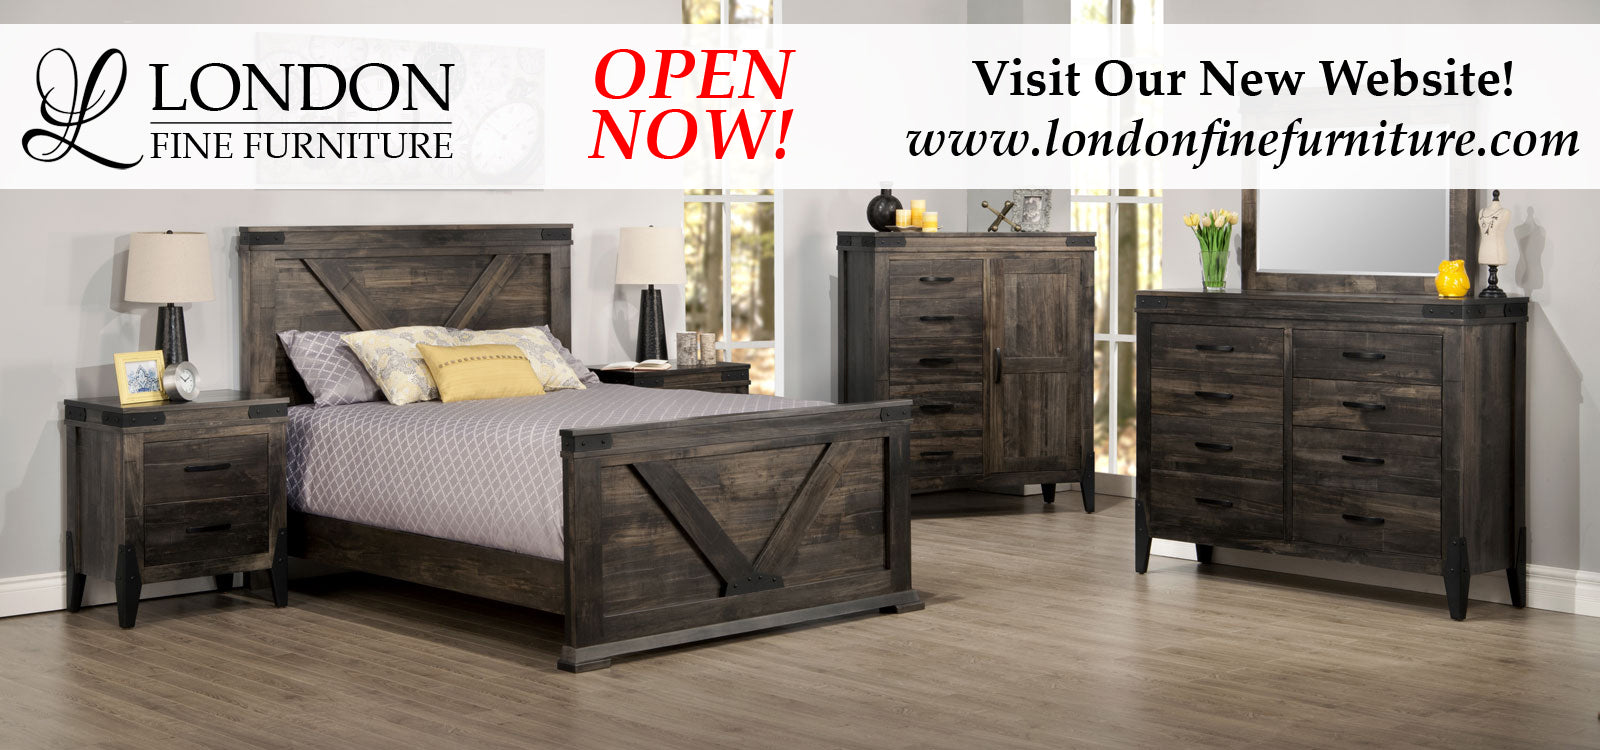 100 Home Decor Stores London Ontario London